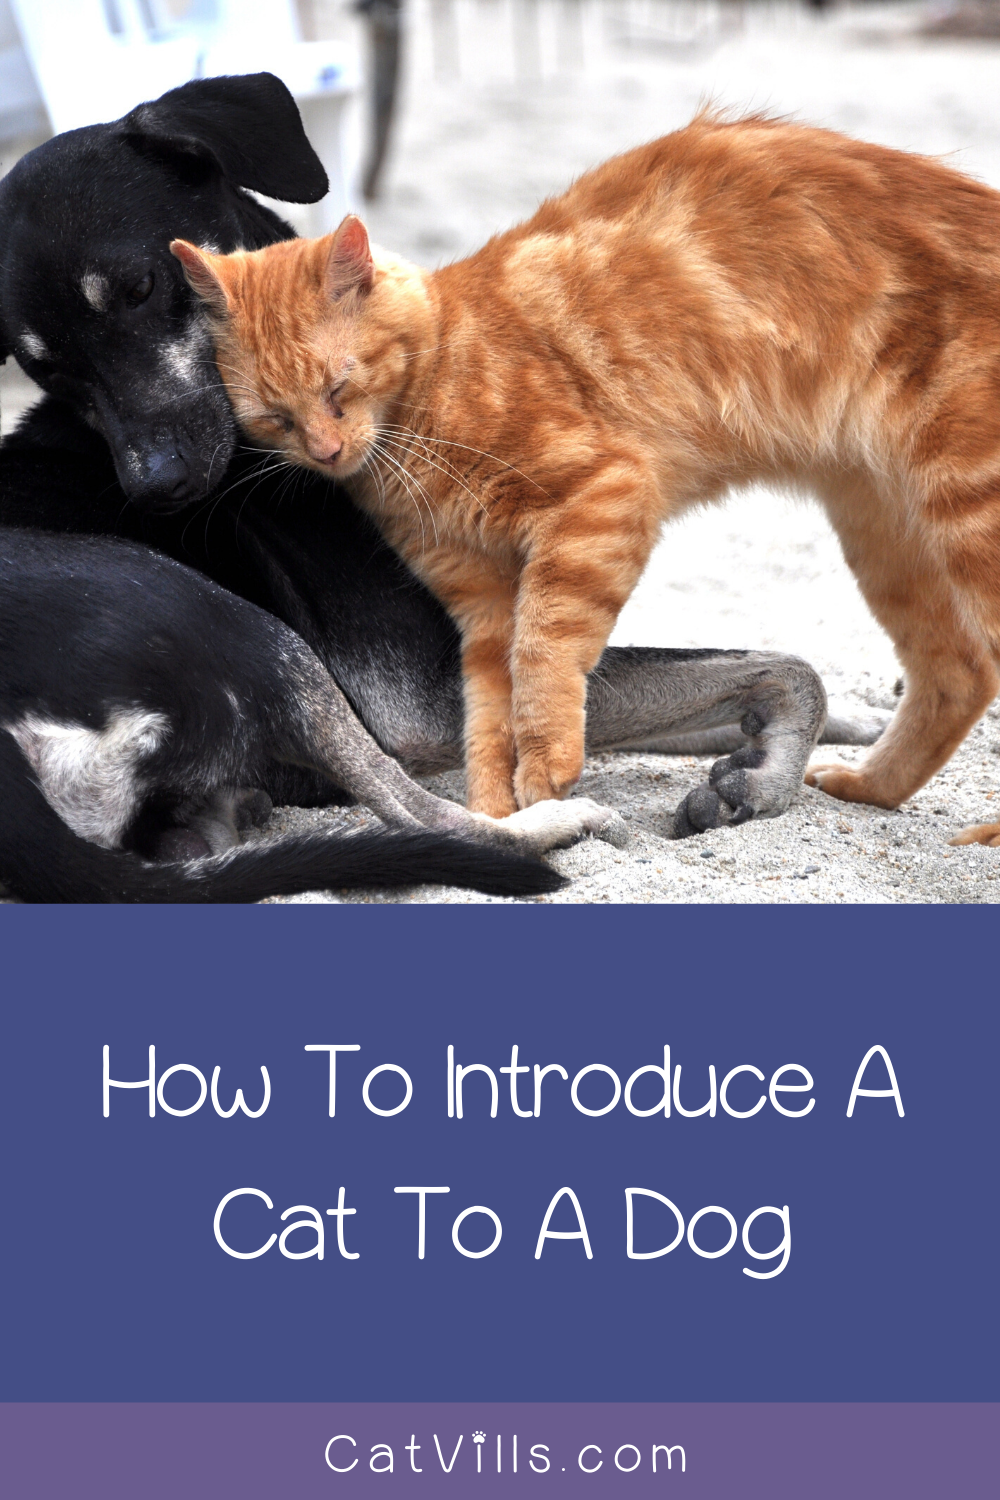 The Best Way To Introduce A Dog To A Cat Life Cats Introducing Kitten To Dog Cats Cat Training